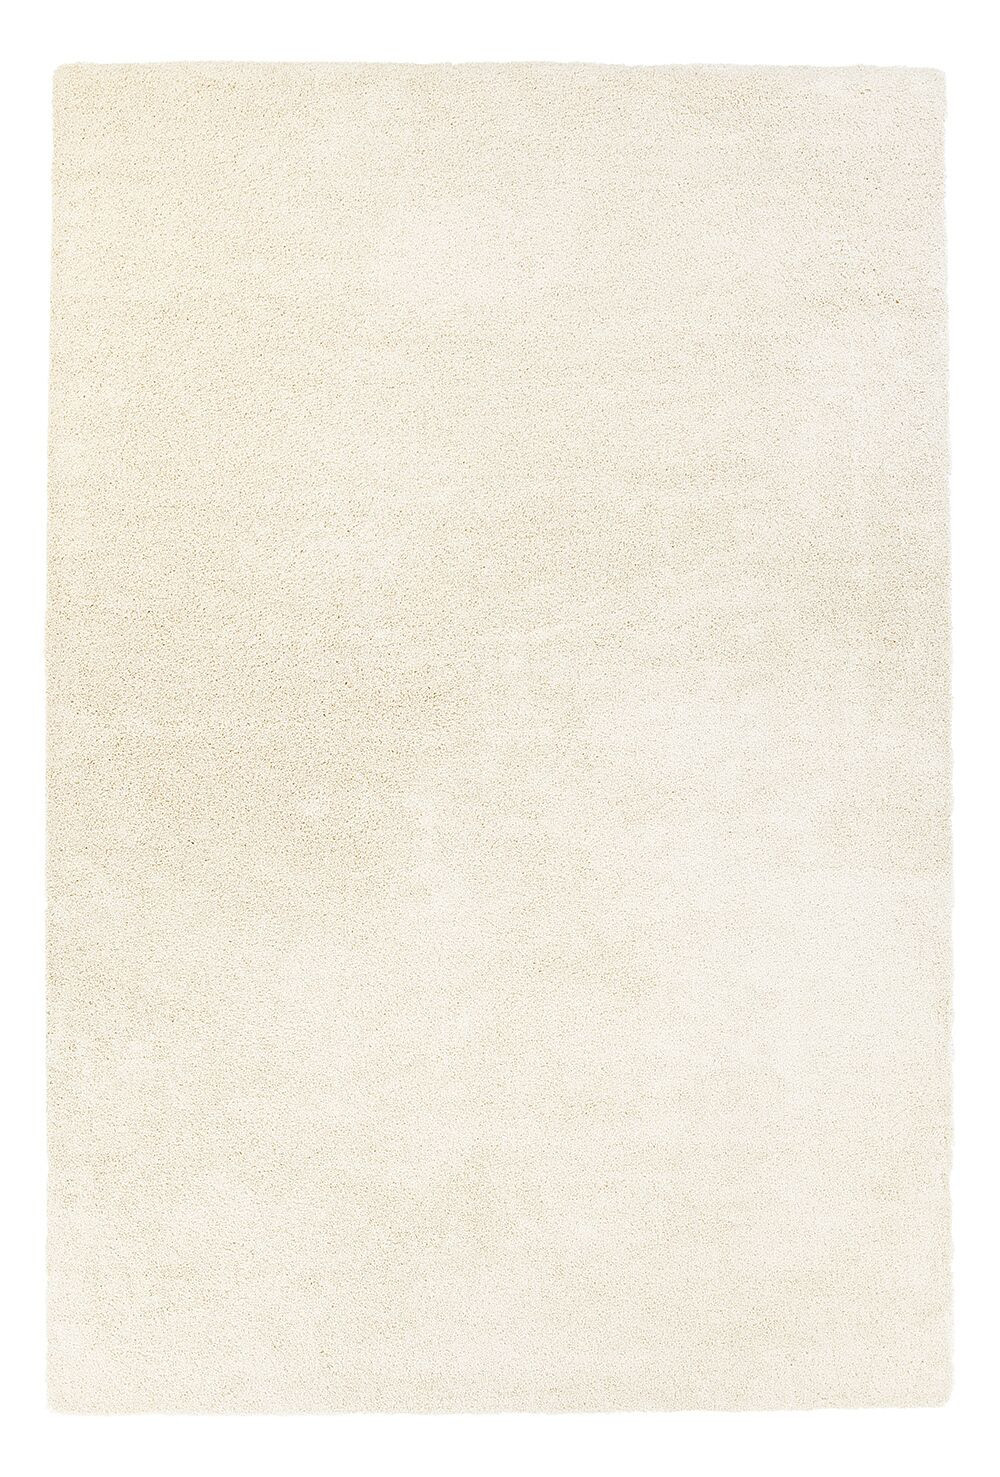 VM Carpet Elysee matto 11 pure white